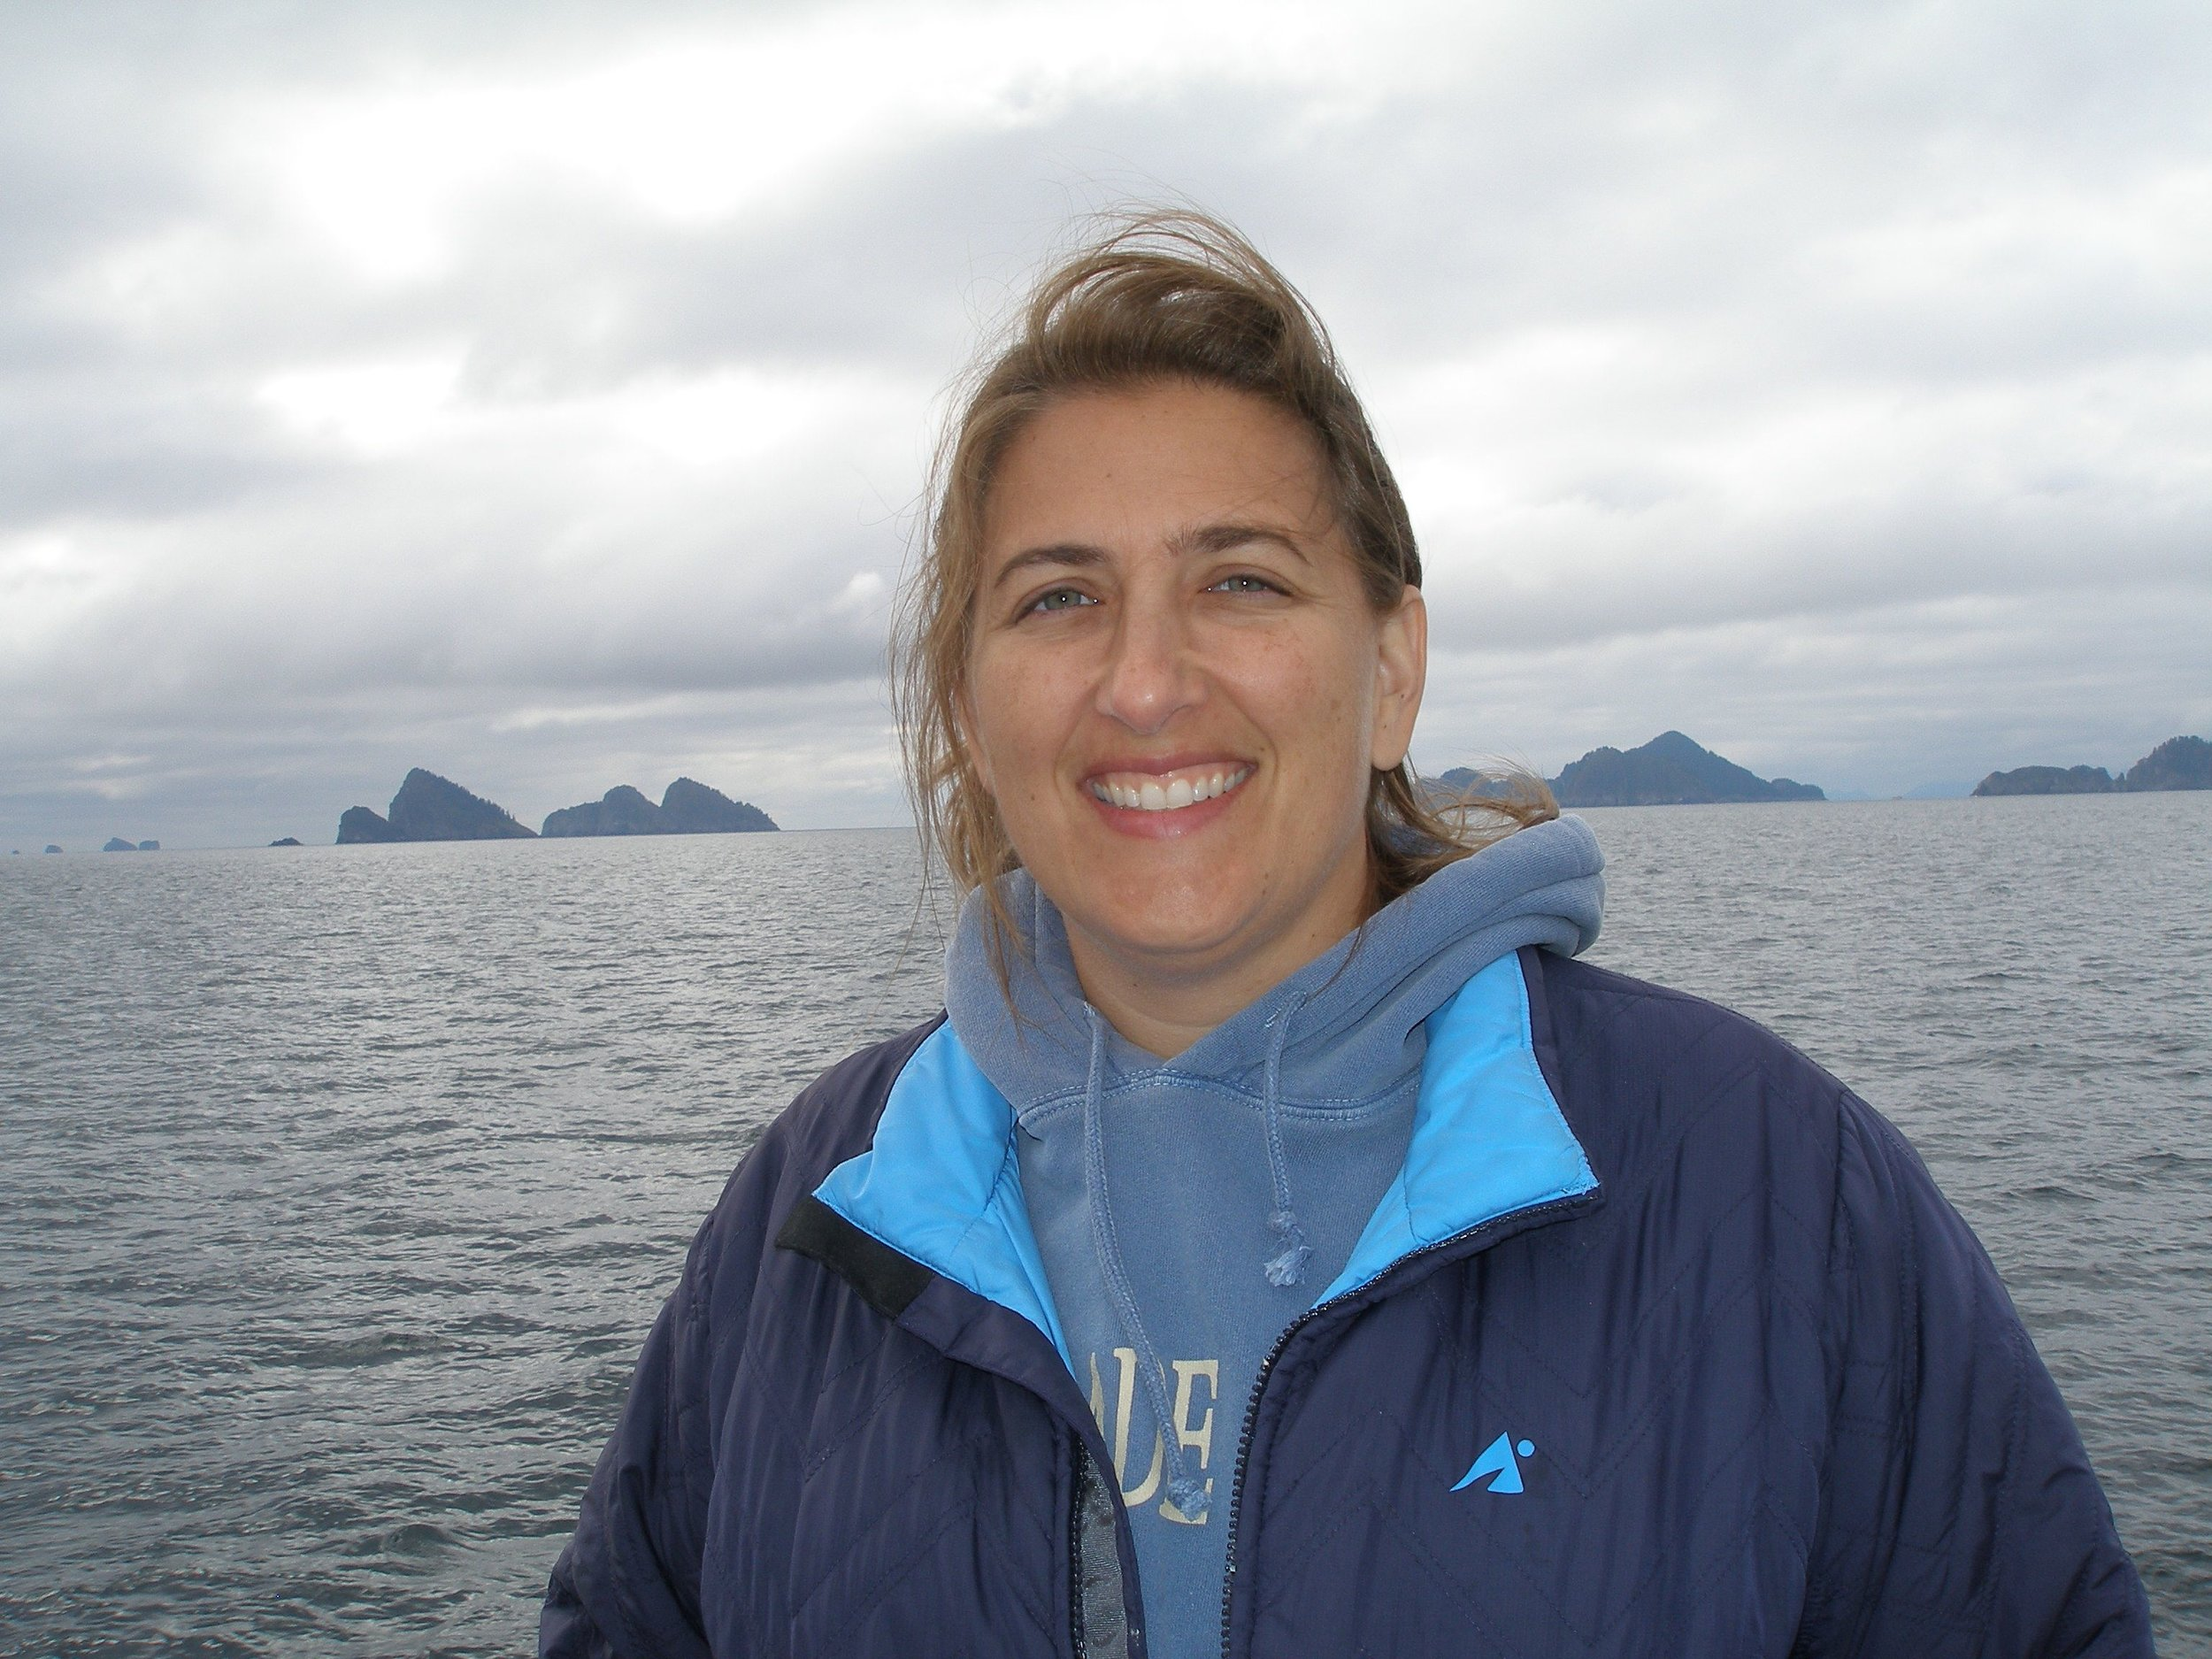 Whale watching excursion in Alaska - we saw some!